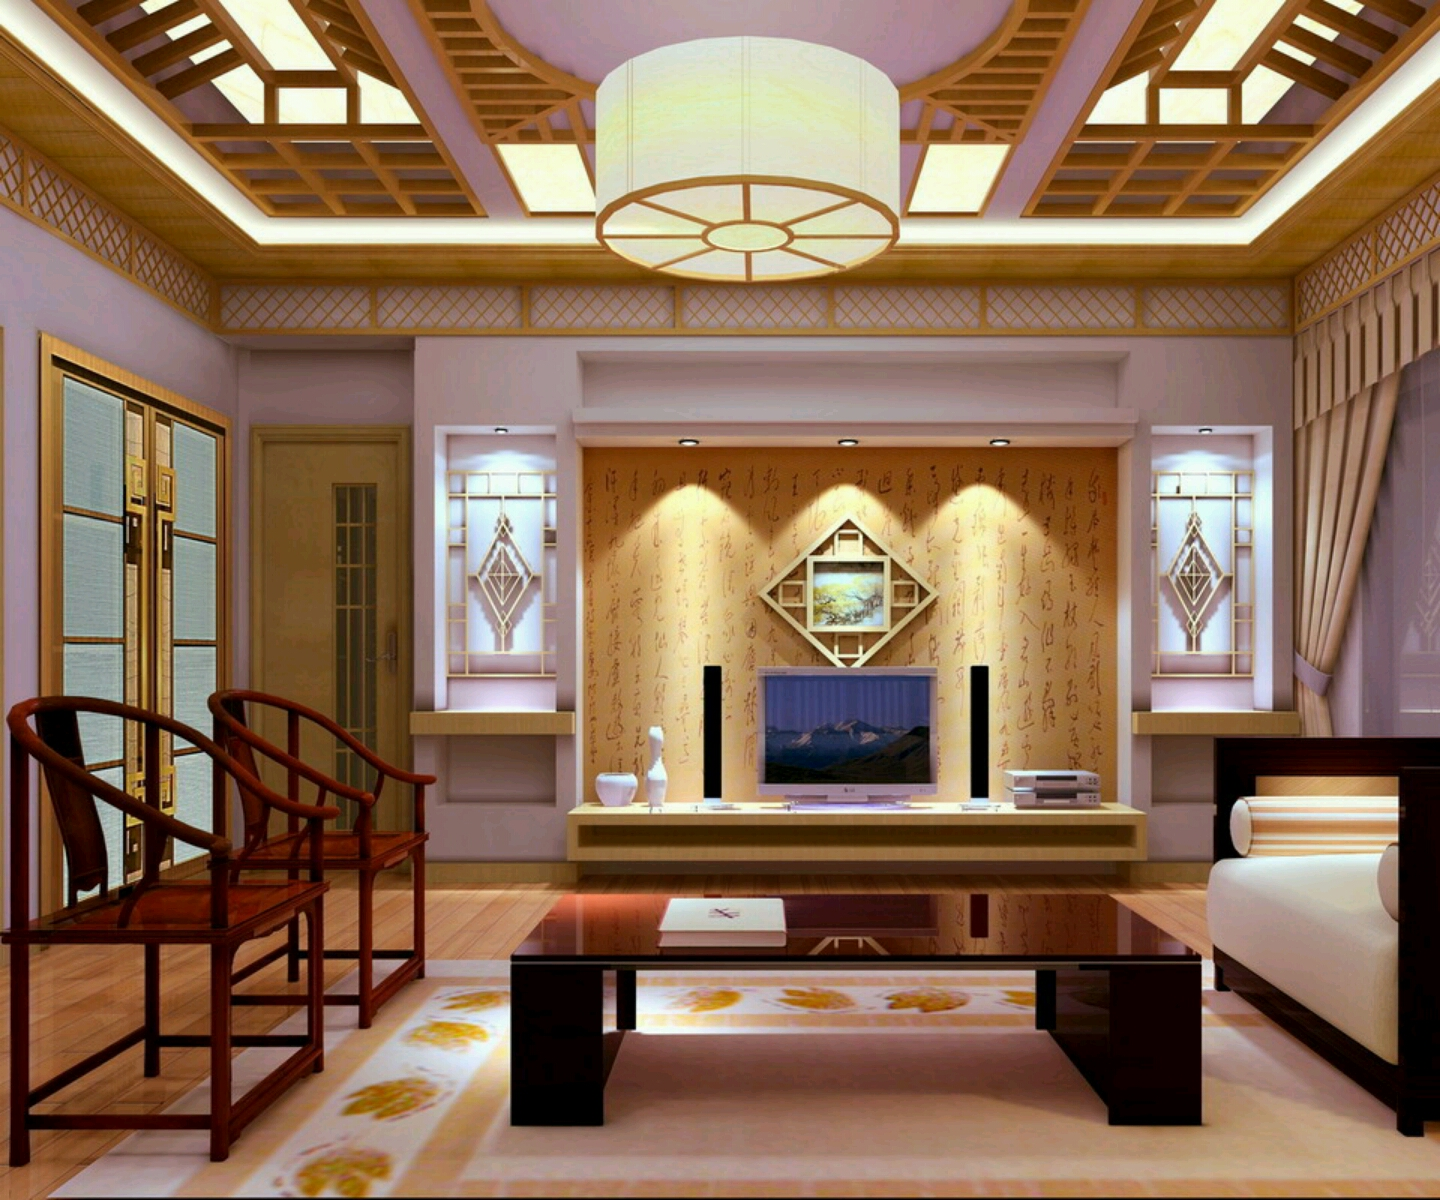 New home designs latest homes interior designs studyrooms How to design your house interior